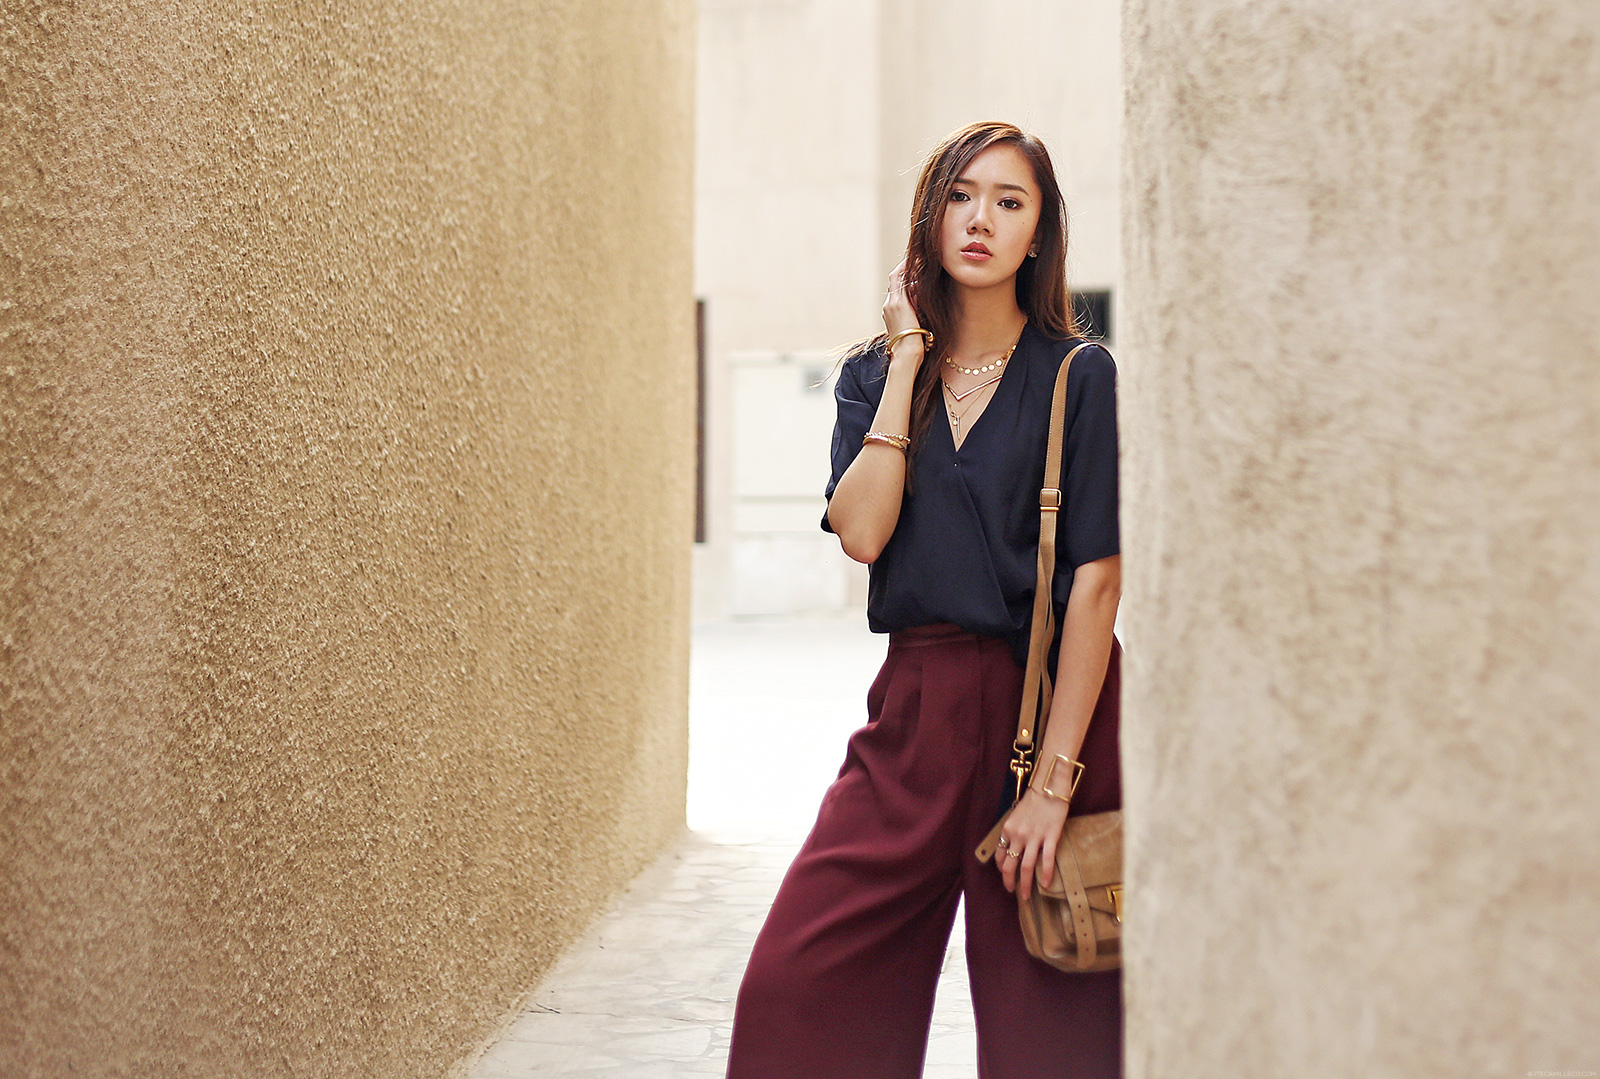 Zara top, Topshop Culottes, Stella McCartney flats at Bastakiya, Dubai | www.itscamilleco.com